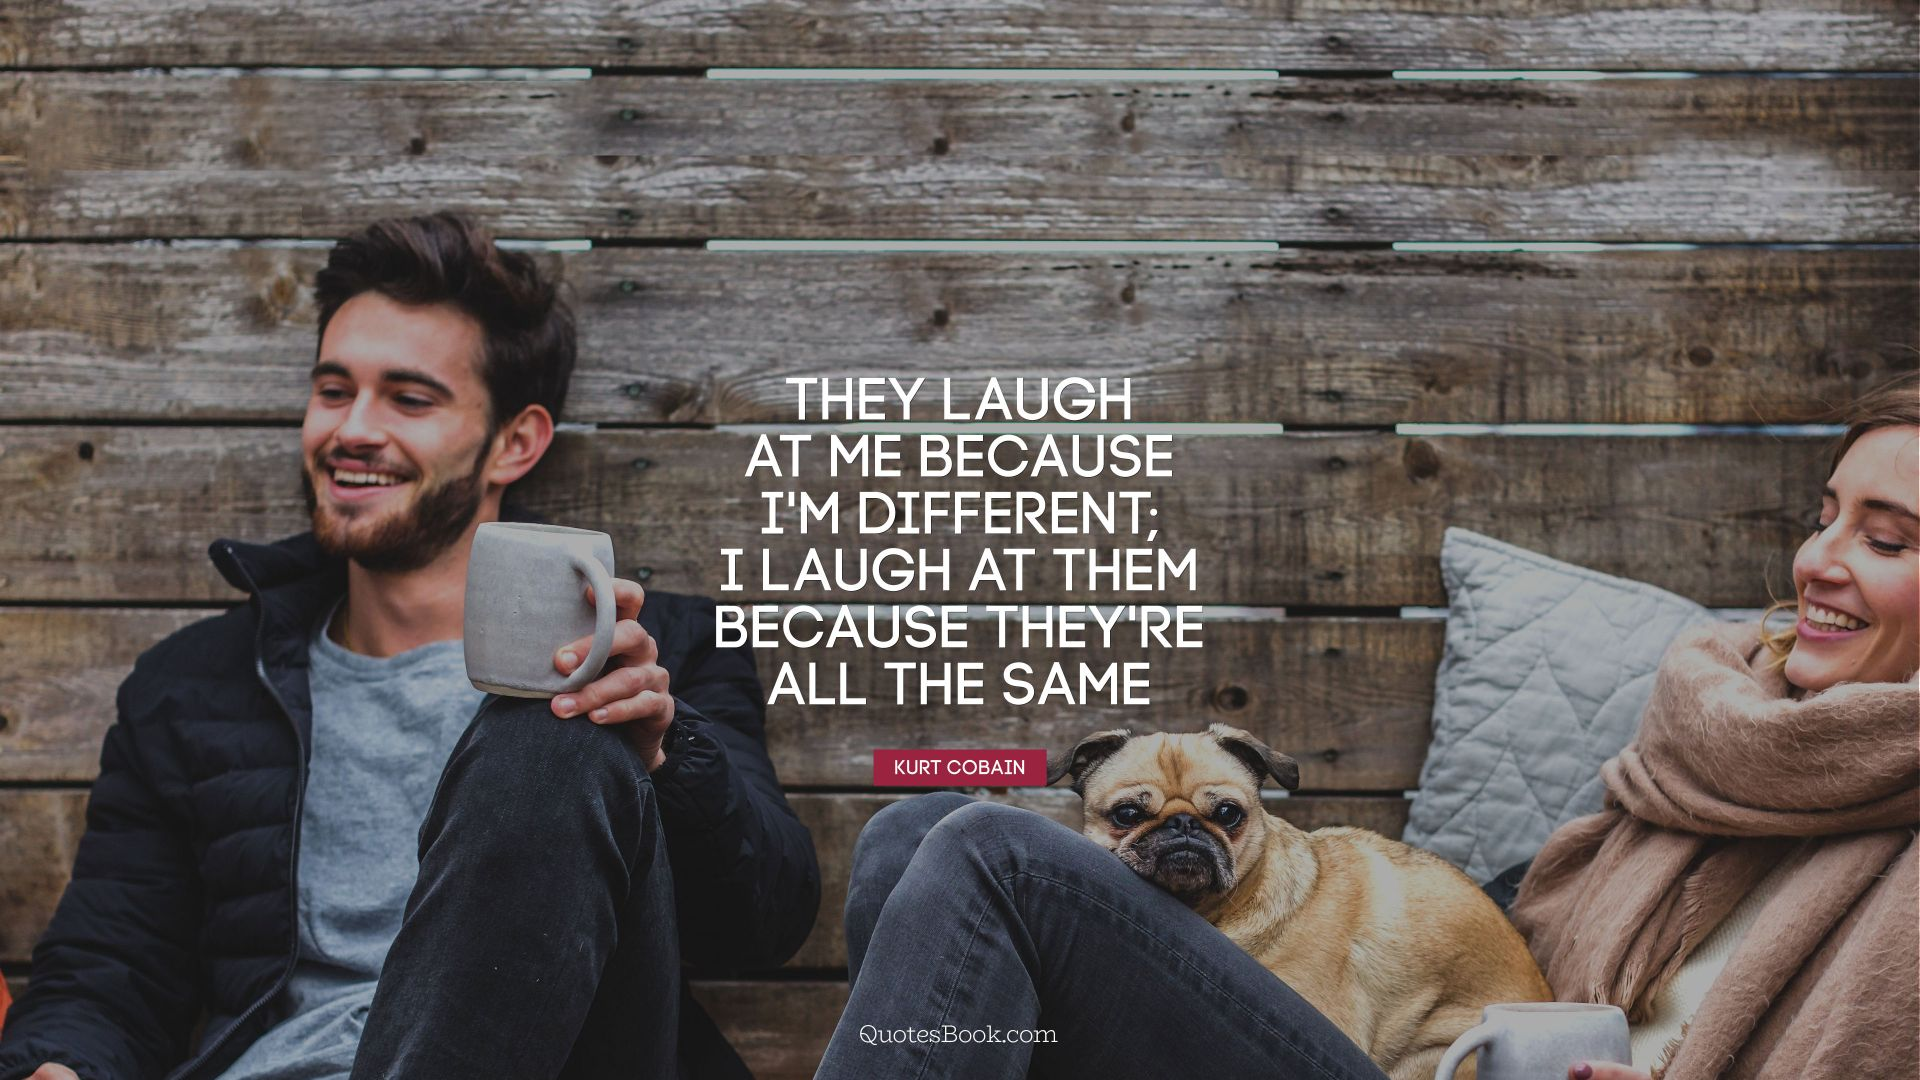 They laugh at me because I'm different; 